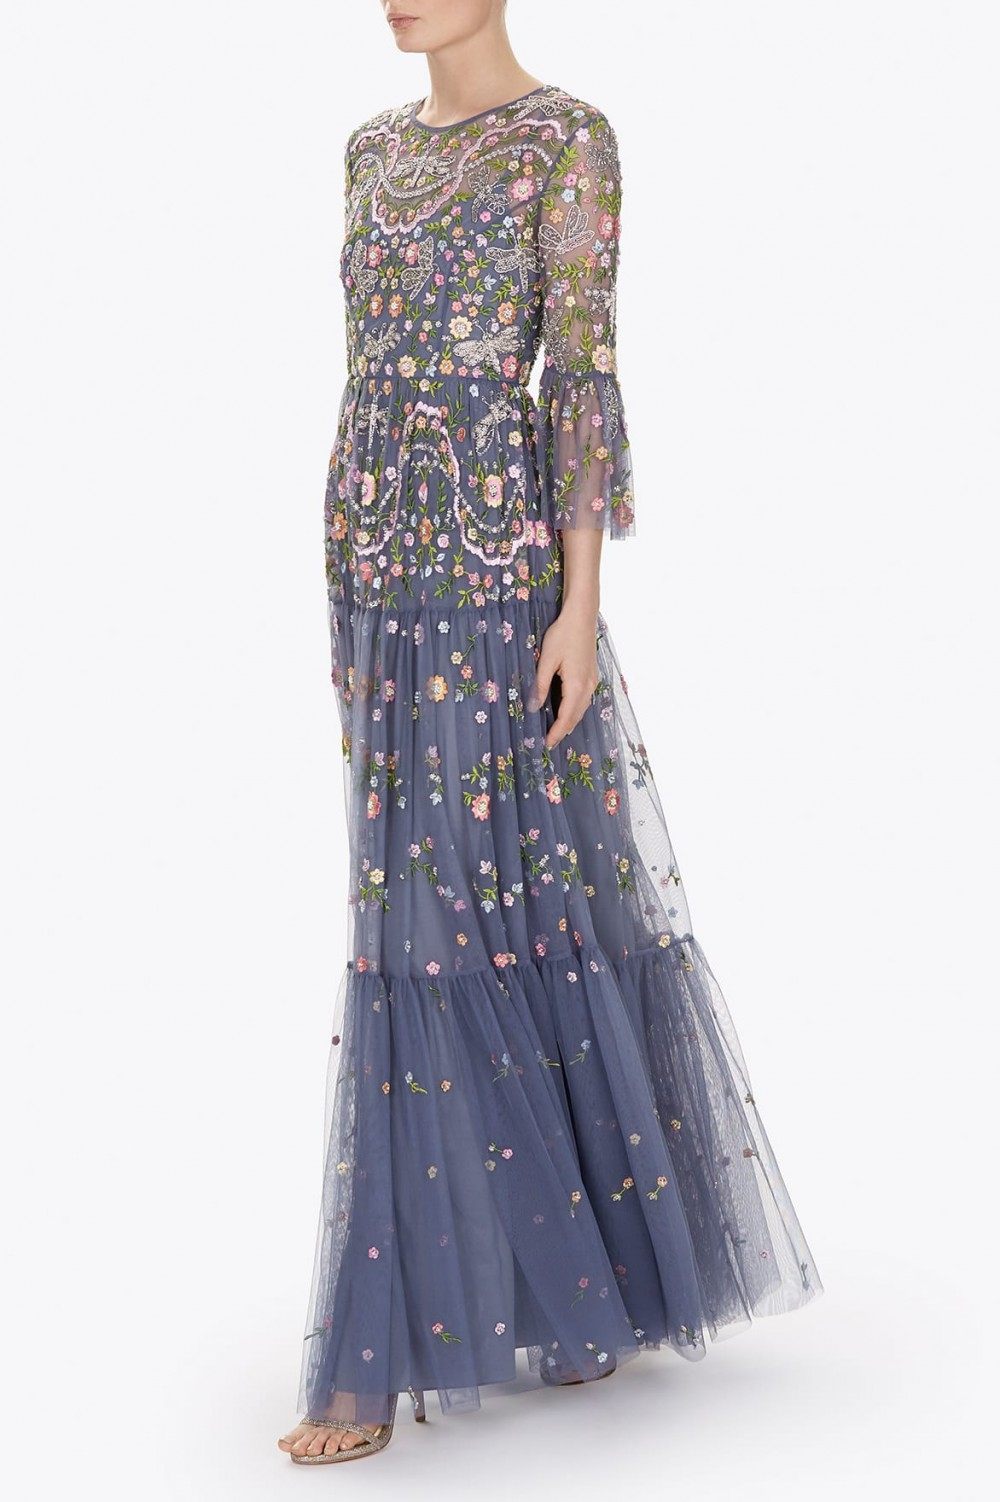 dragonfly_garden_maxi_dress_slateblue_1.jpg